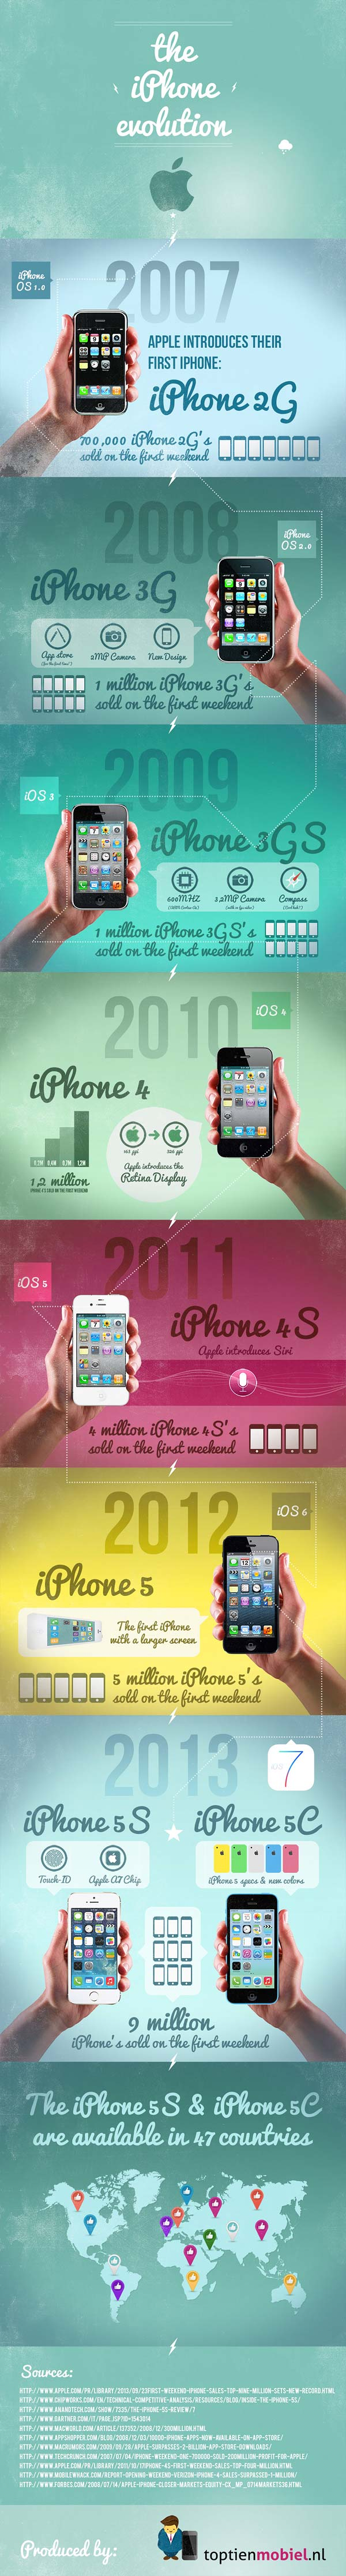 infographic iphone